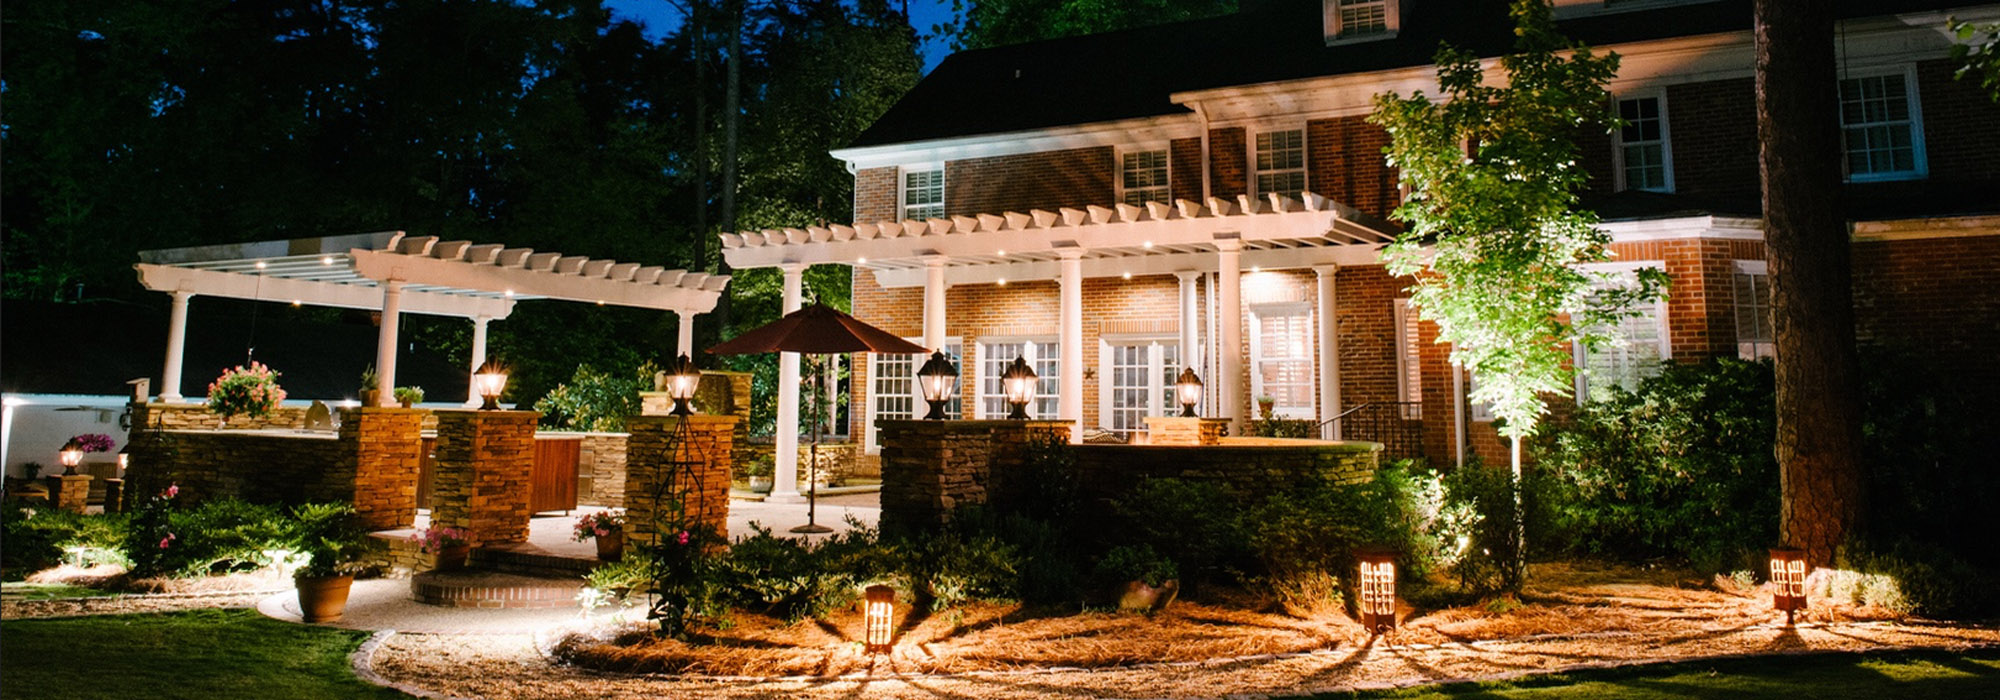 Im renovating my outdoor space should i hire my landscape company at outdoor lighting perspectives of virginia beach we work with you to create a custom design for your property highlighting the features you find most aloadofball Image collections